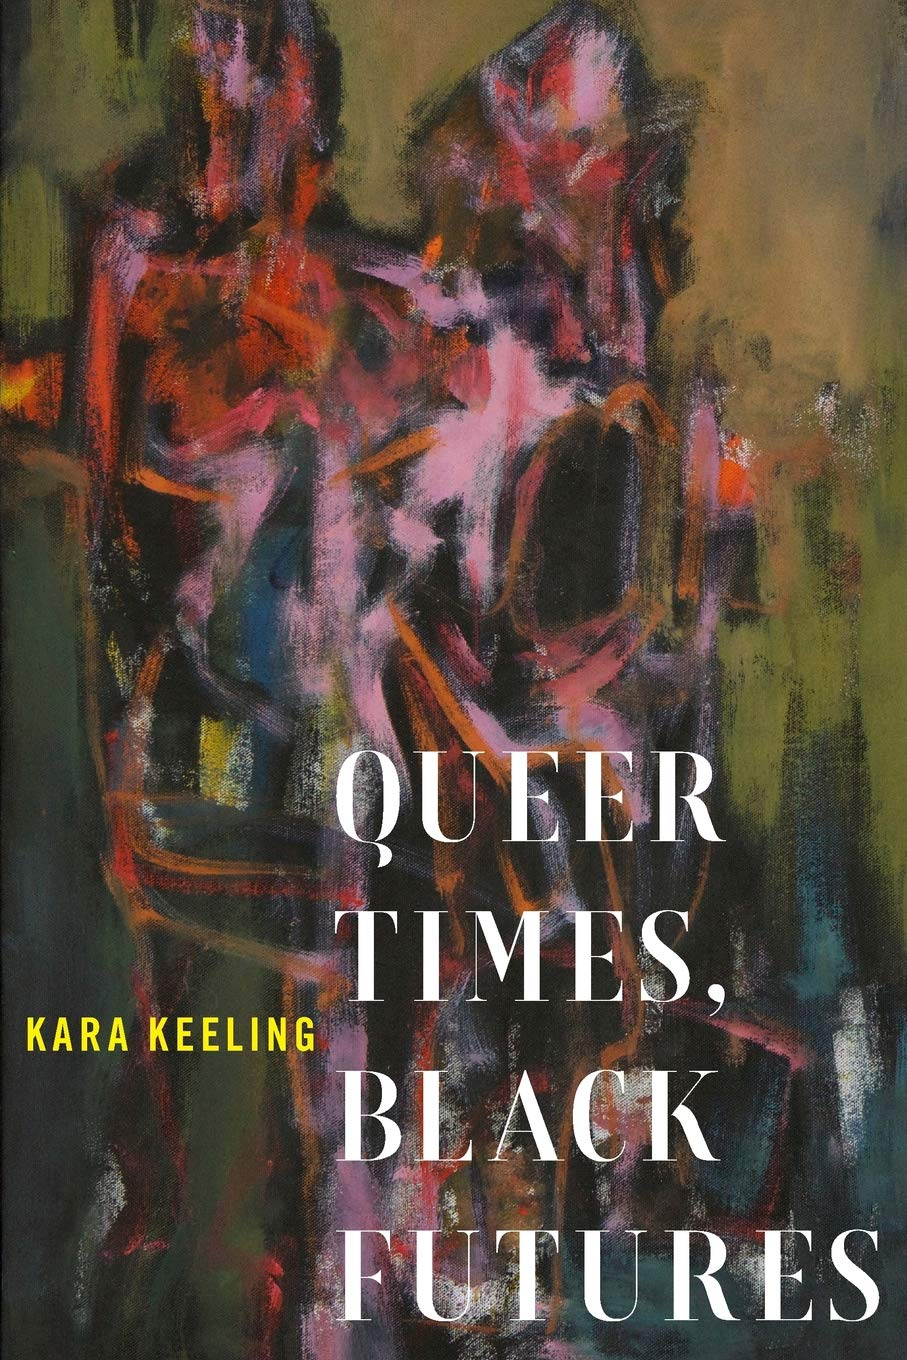 Queer Times Black Futures